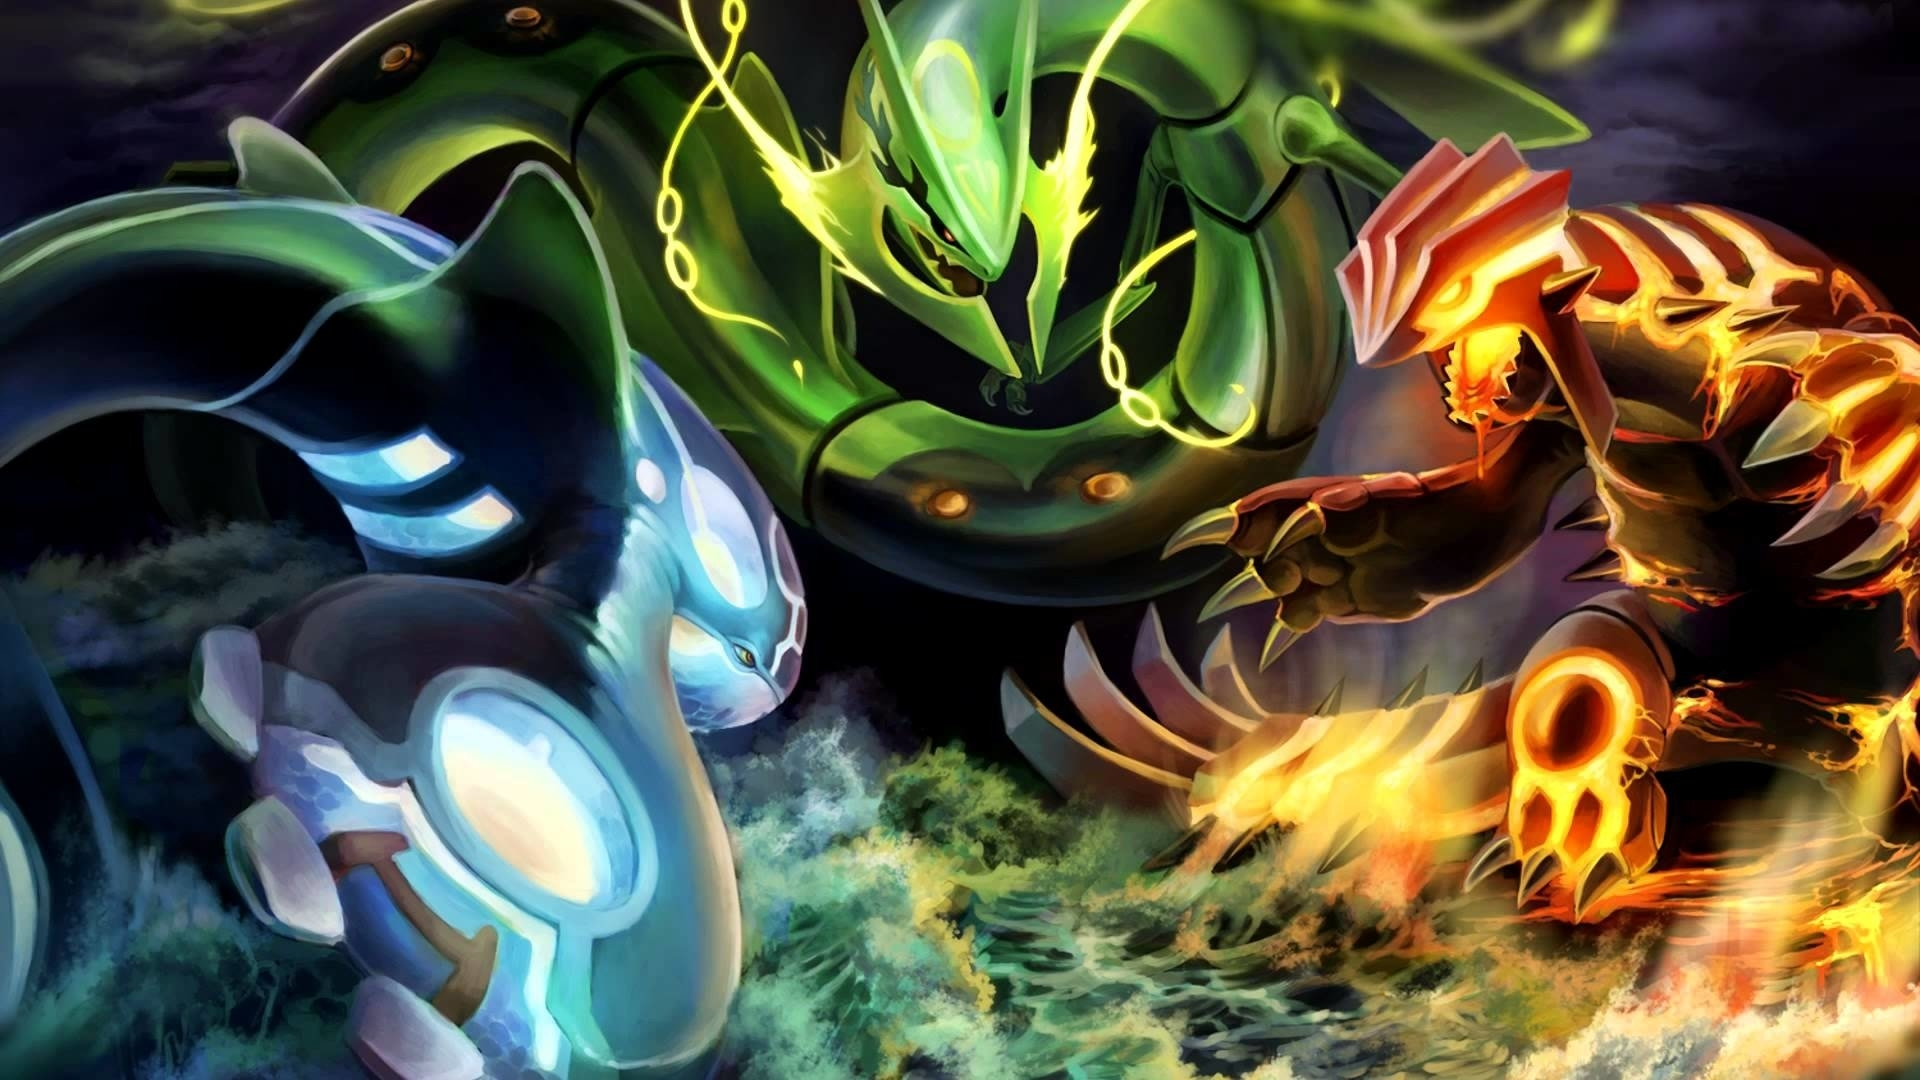 all legendary pokemon wallpaper ·①